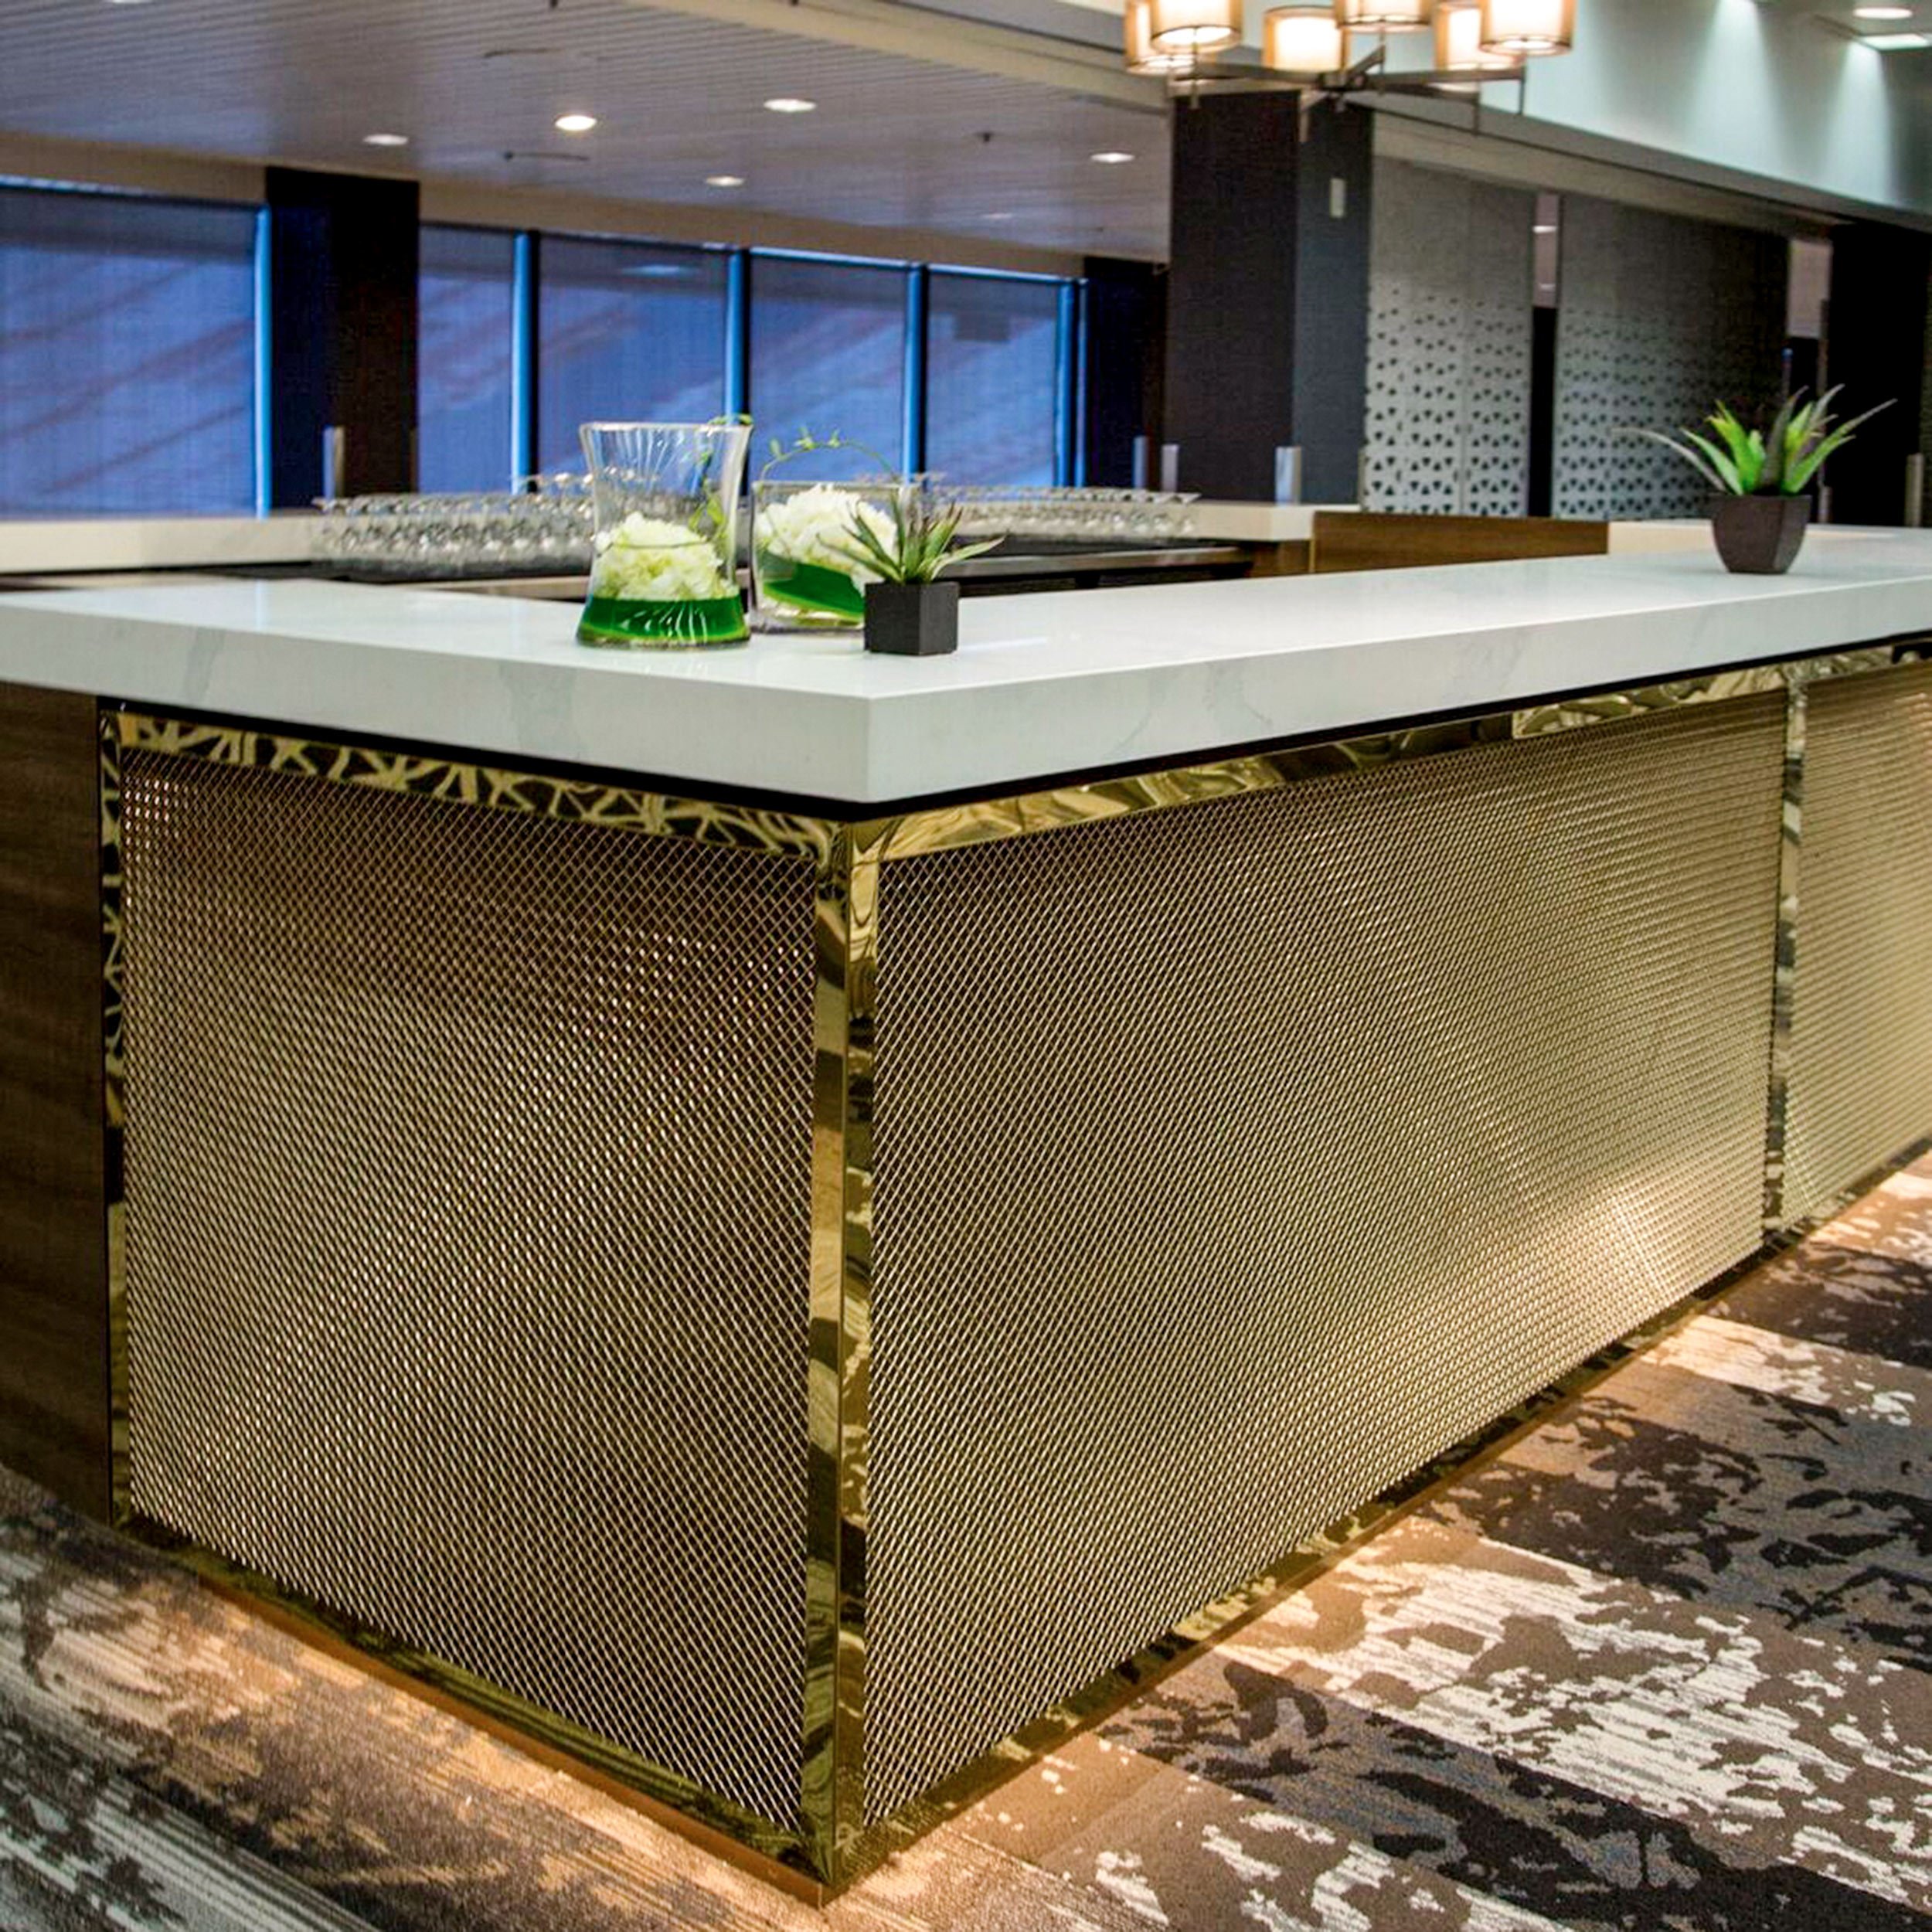 The newly redesigned Red and White club at the University of Calgary features Banker Wire's L-441 in bronze as bar cladding.